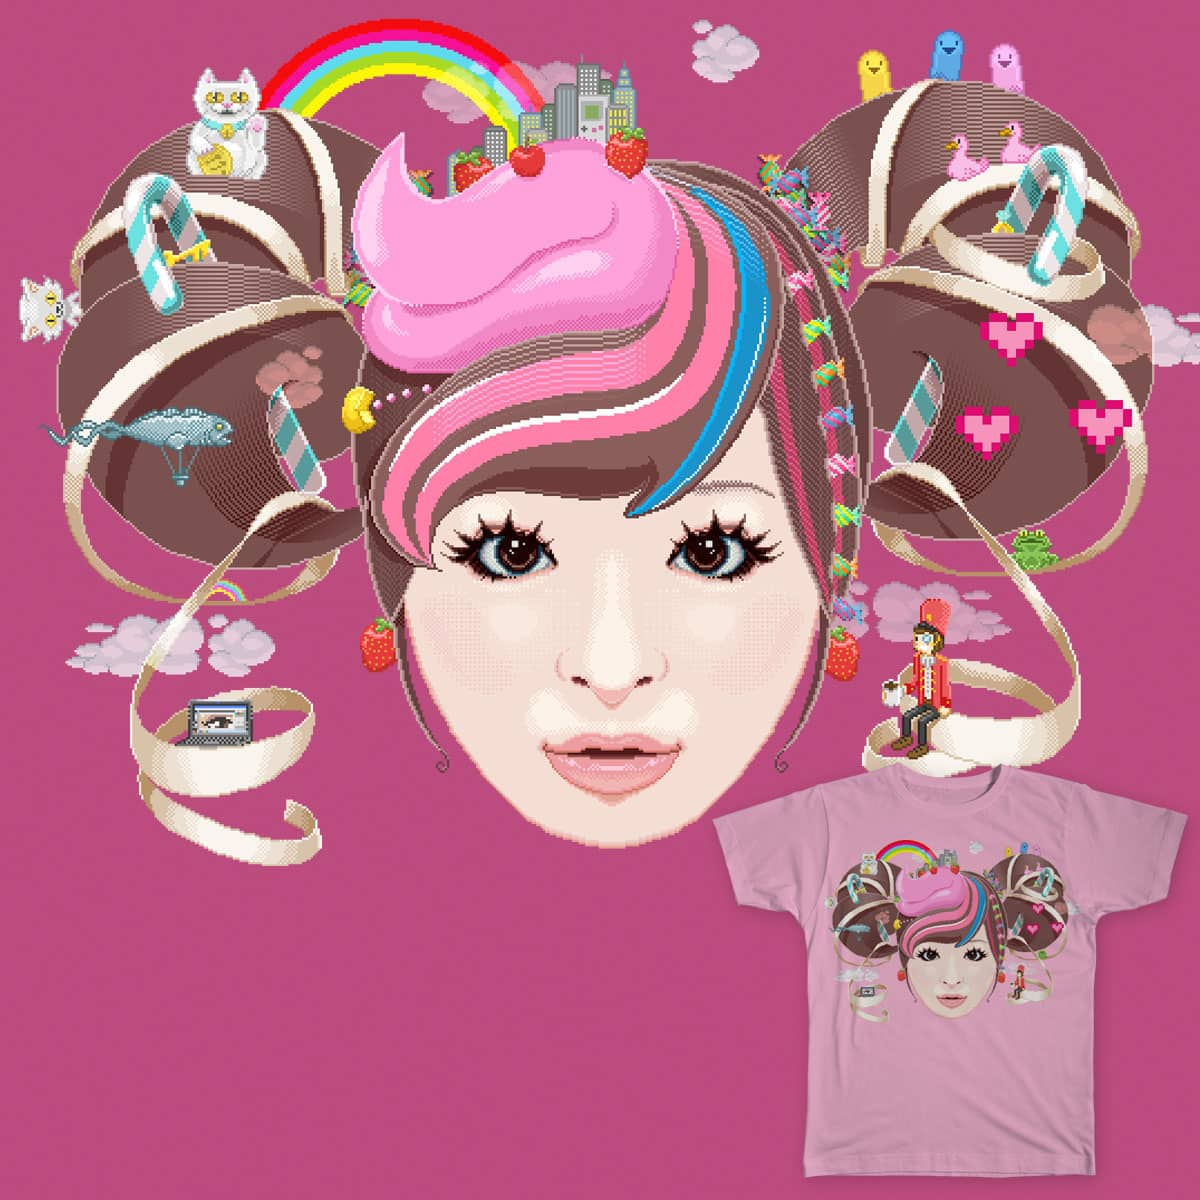 Kyary Pixel Pamyu by Kaeruntastico on Threadless